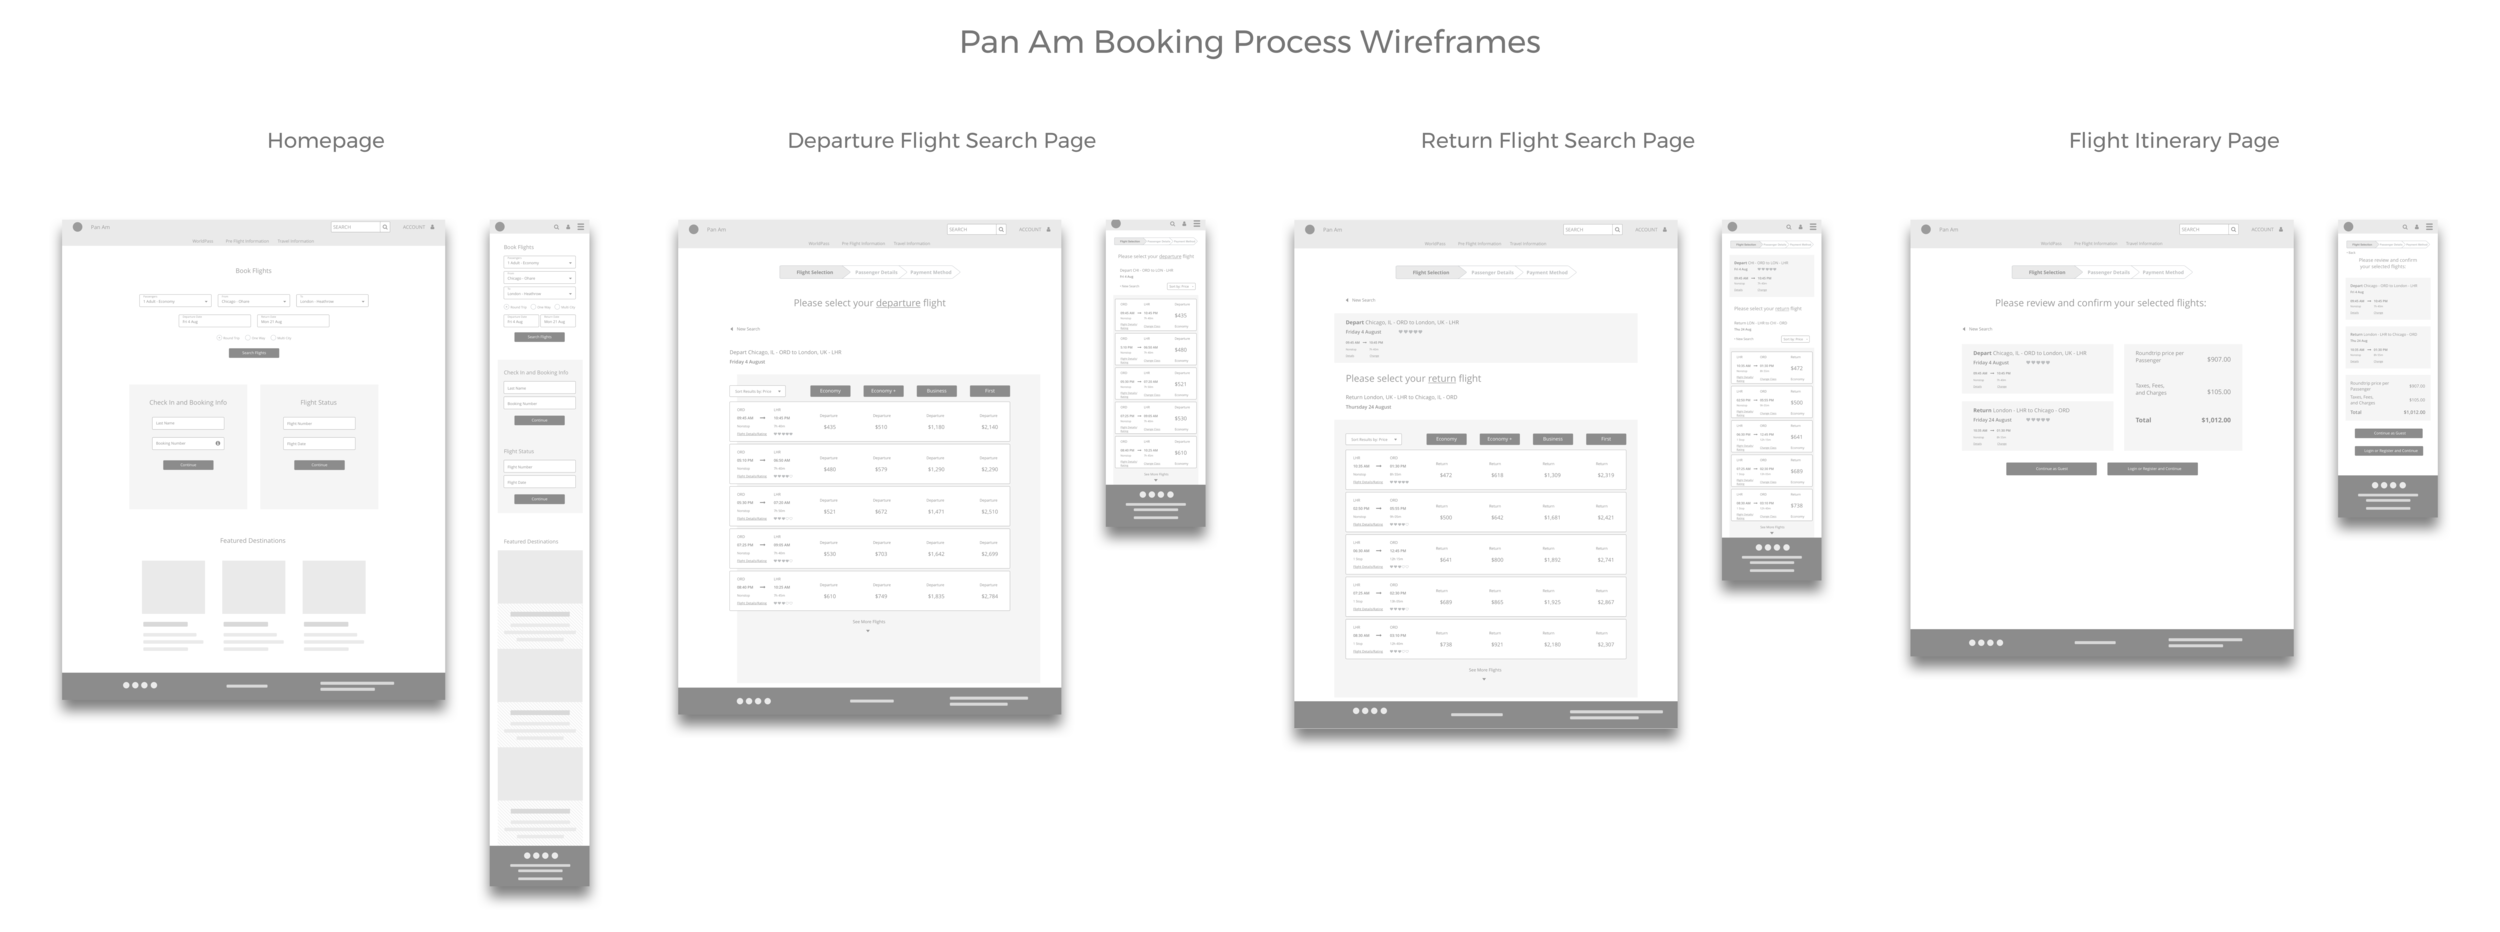 Pan Am Mid Fi Wireframes for Pan Am Copy.png